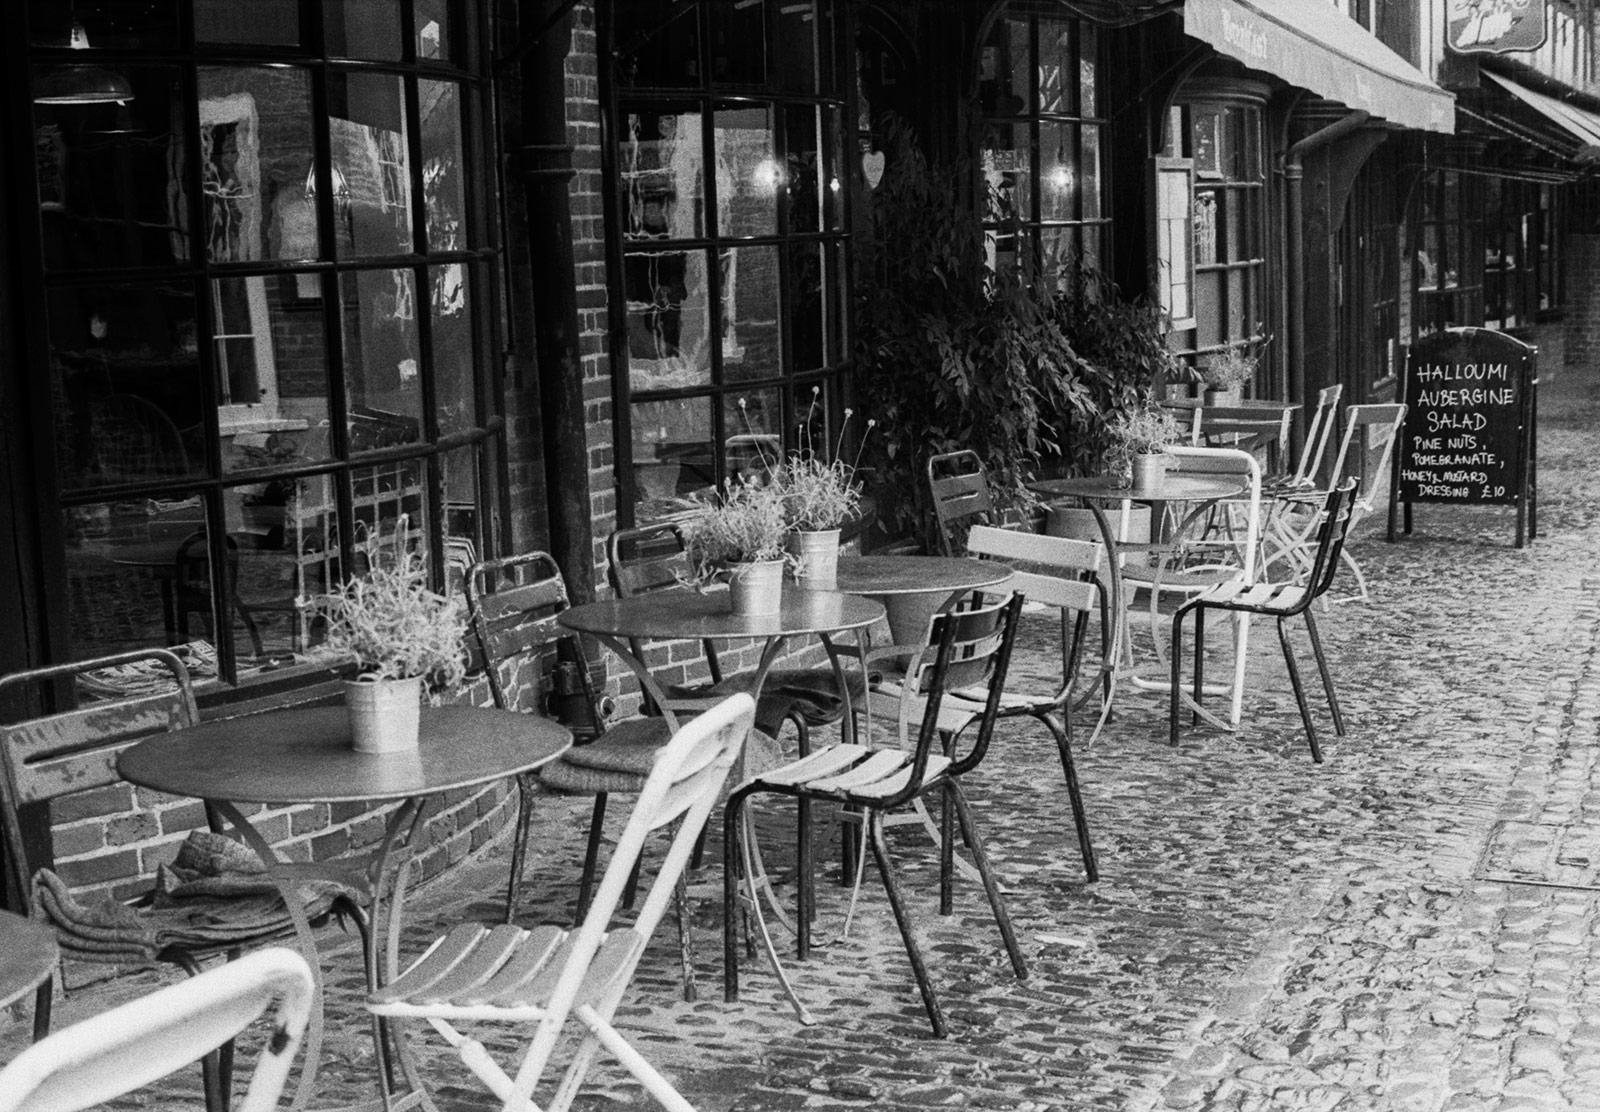 Tables and chairs on street